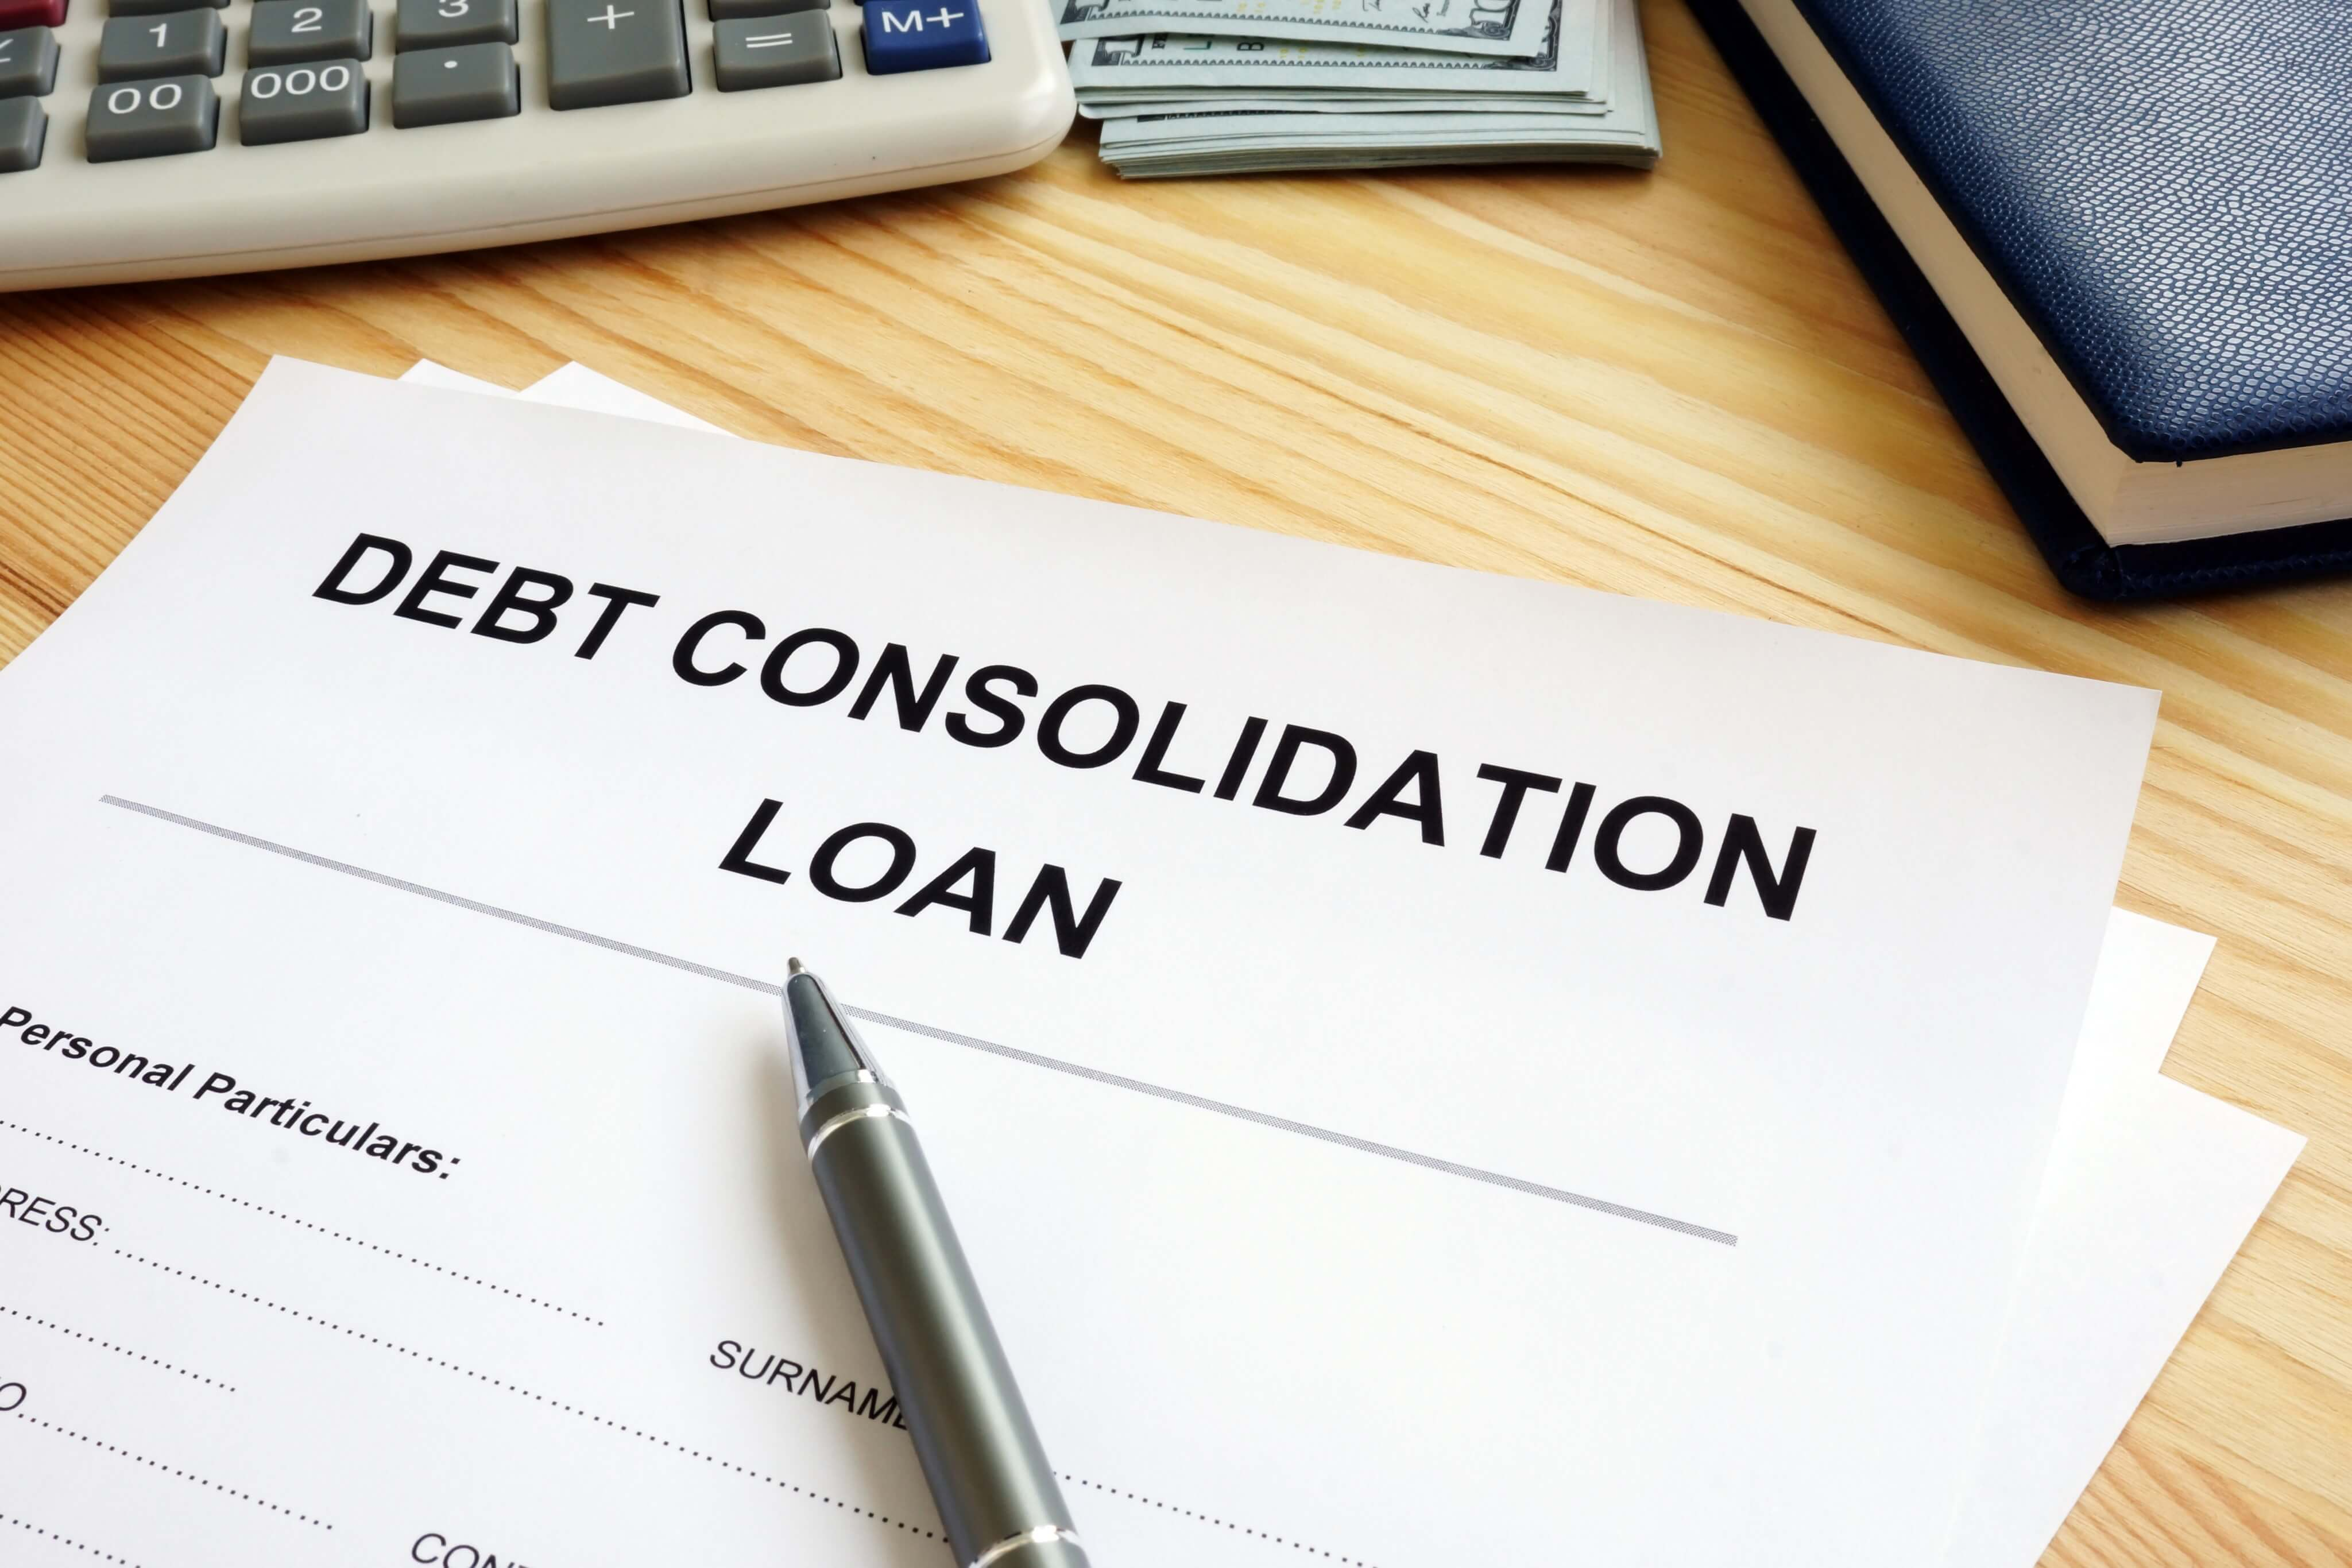 How You Can Make the Most Out of Your Debt Consolidation Loan